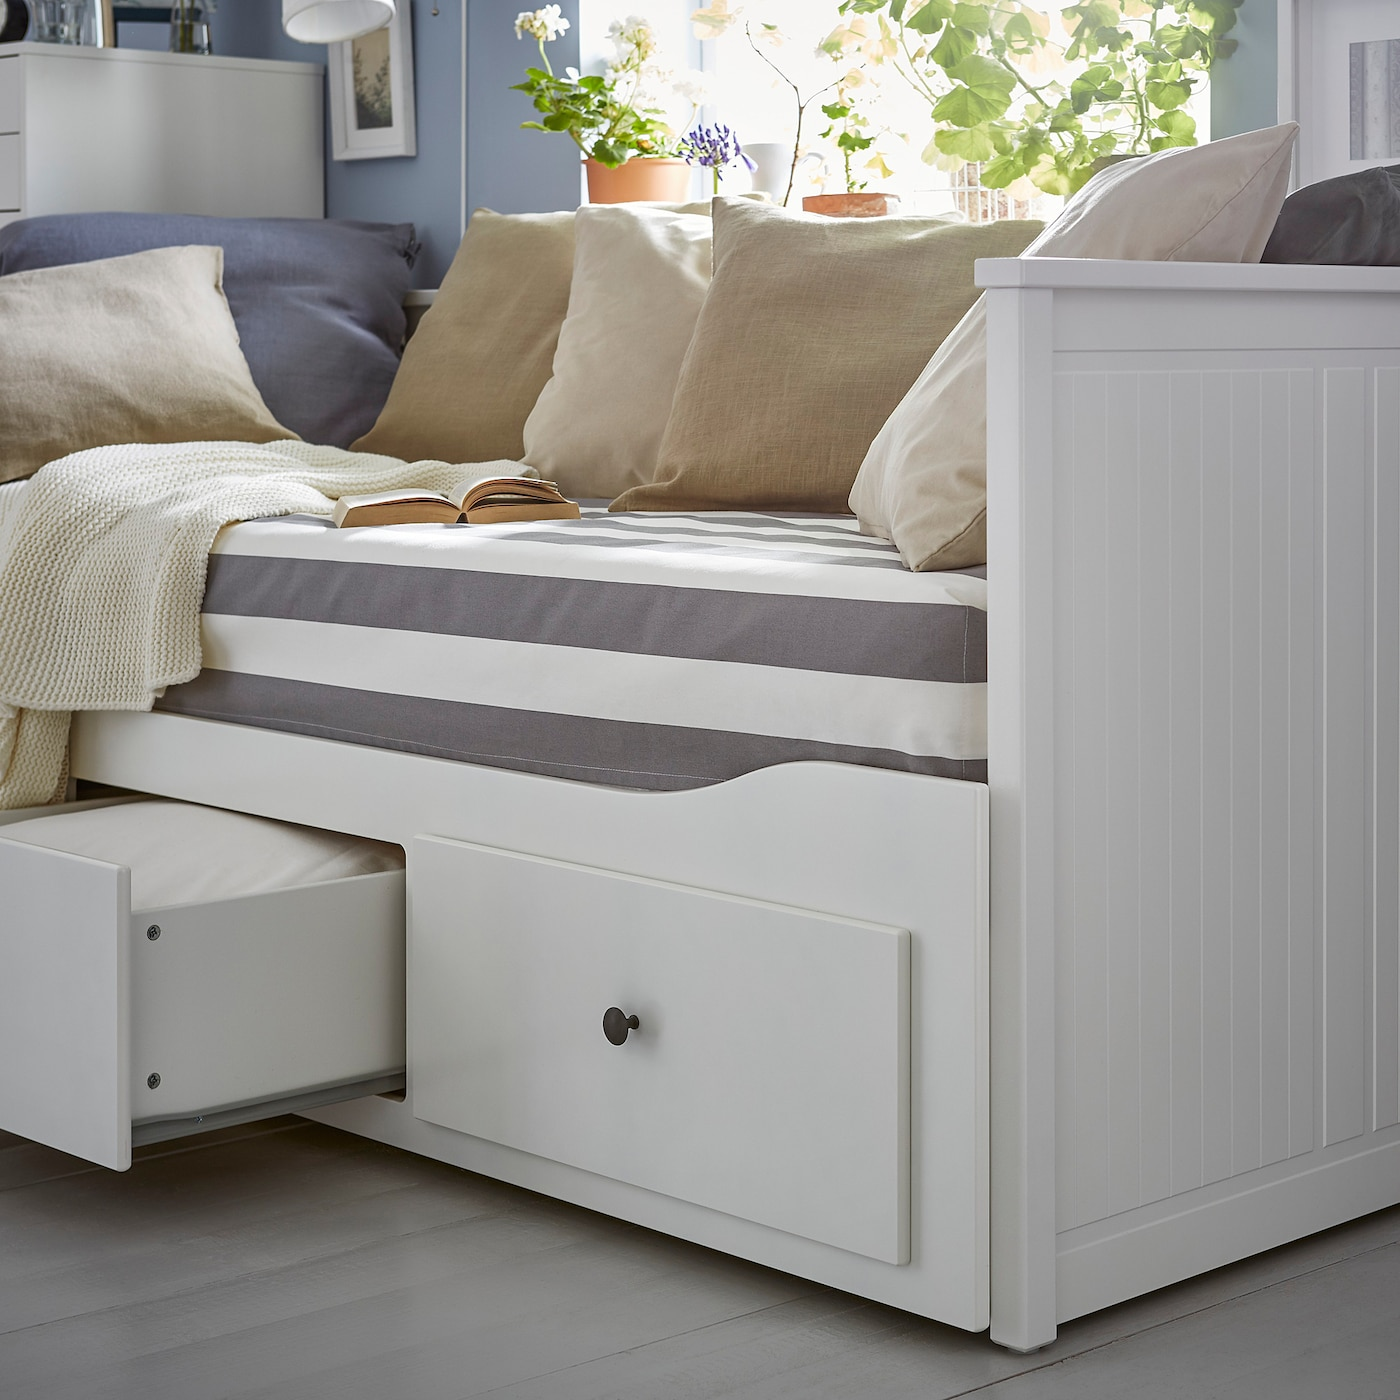 hemnes day bed w 3 drawers 2 mattresses white moshult firm 80 x 200 cm ikea. Black Bedroom Furniture Sets. Home Design Ideas